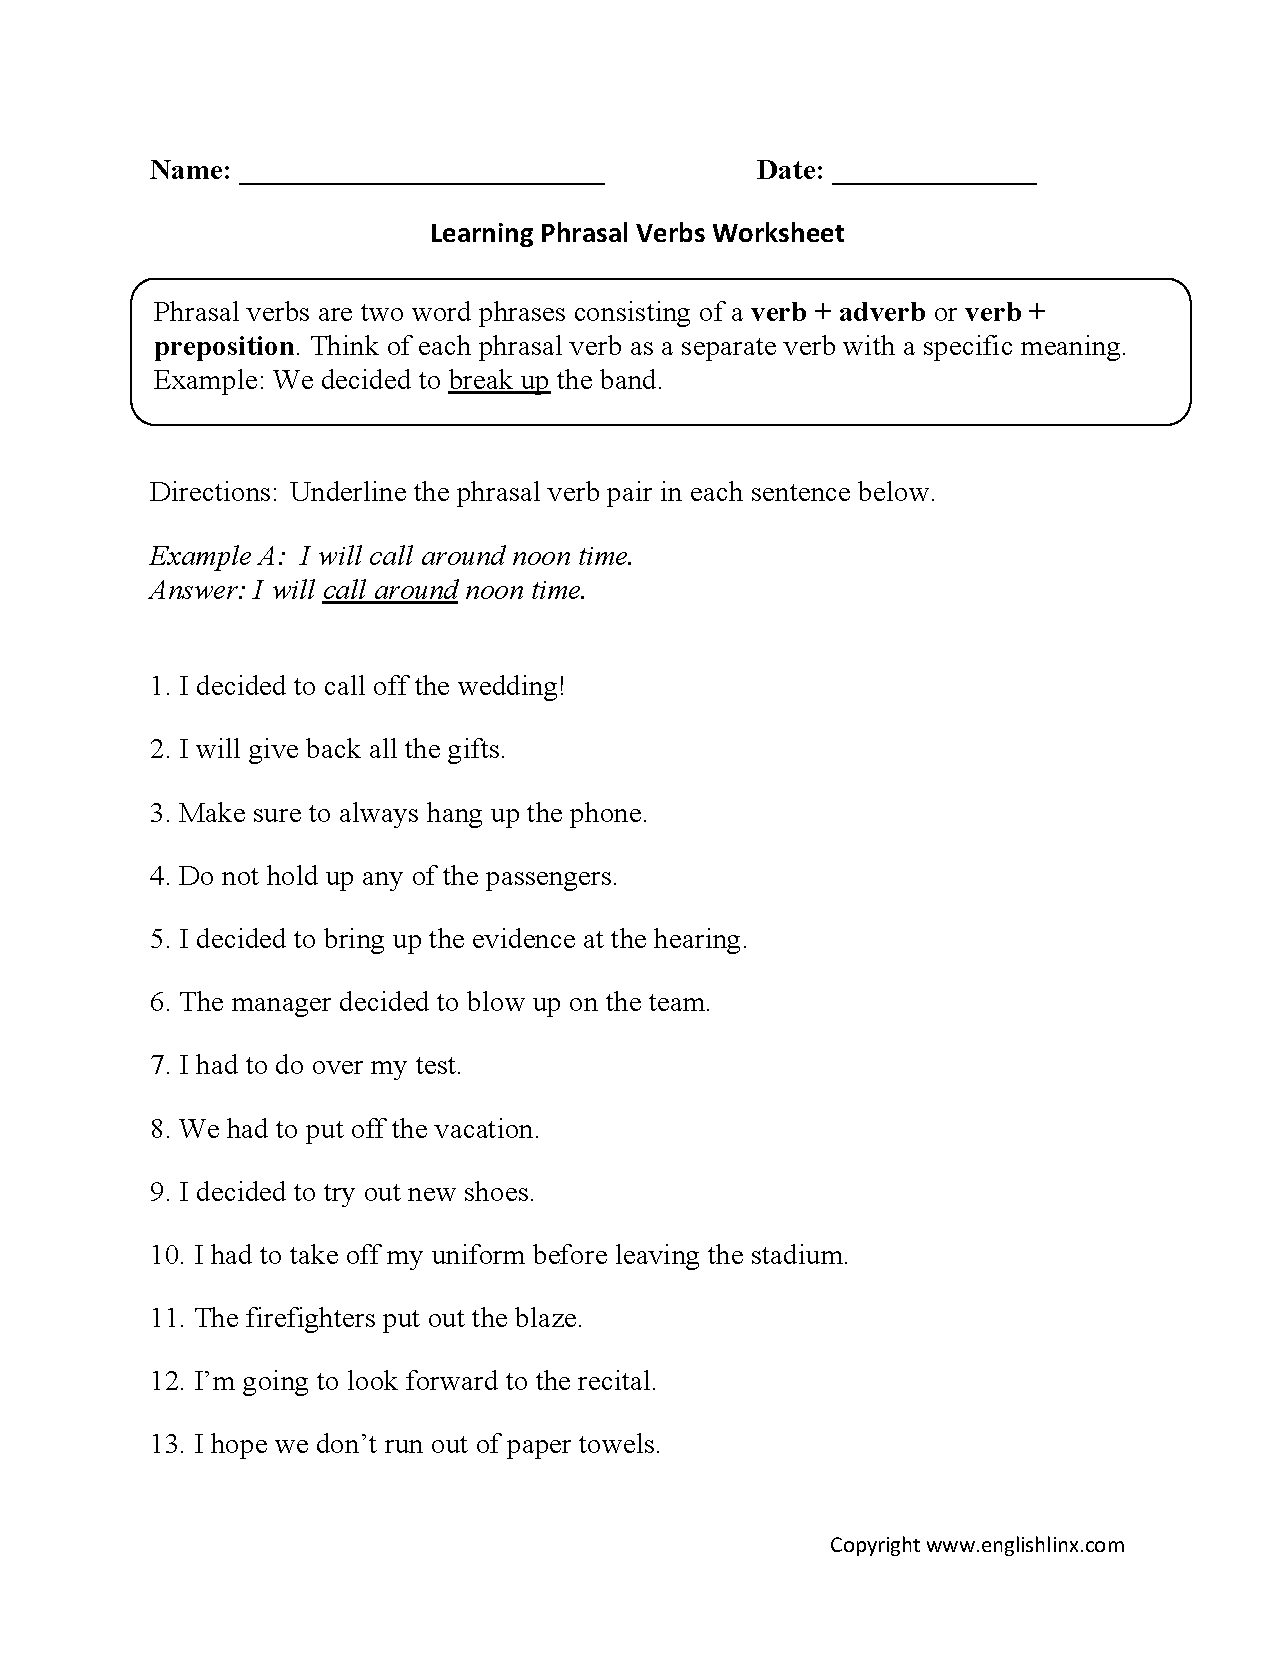 Phrasal Verbs Worksheets | 7Th Grade English | Verb Worksheets | Subject Verb Agreement Printable Worksheets High School